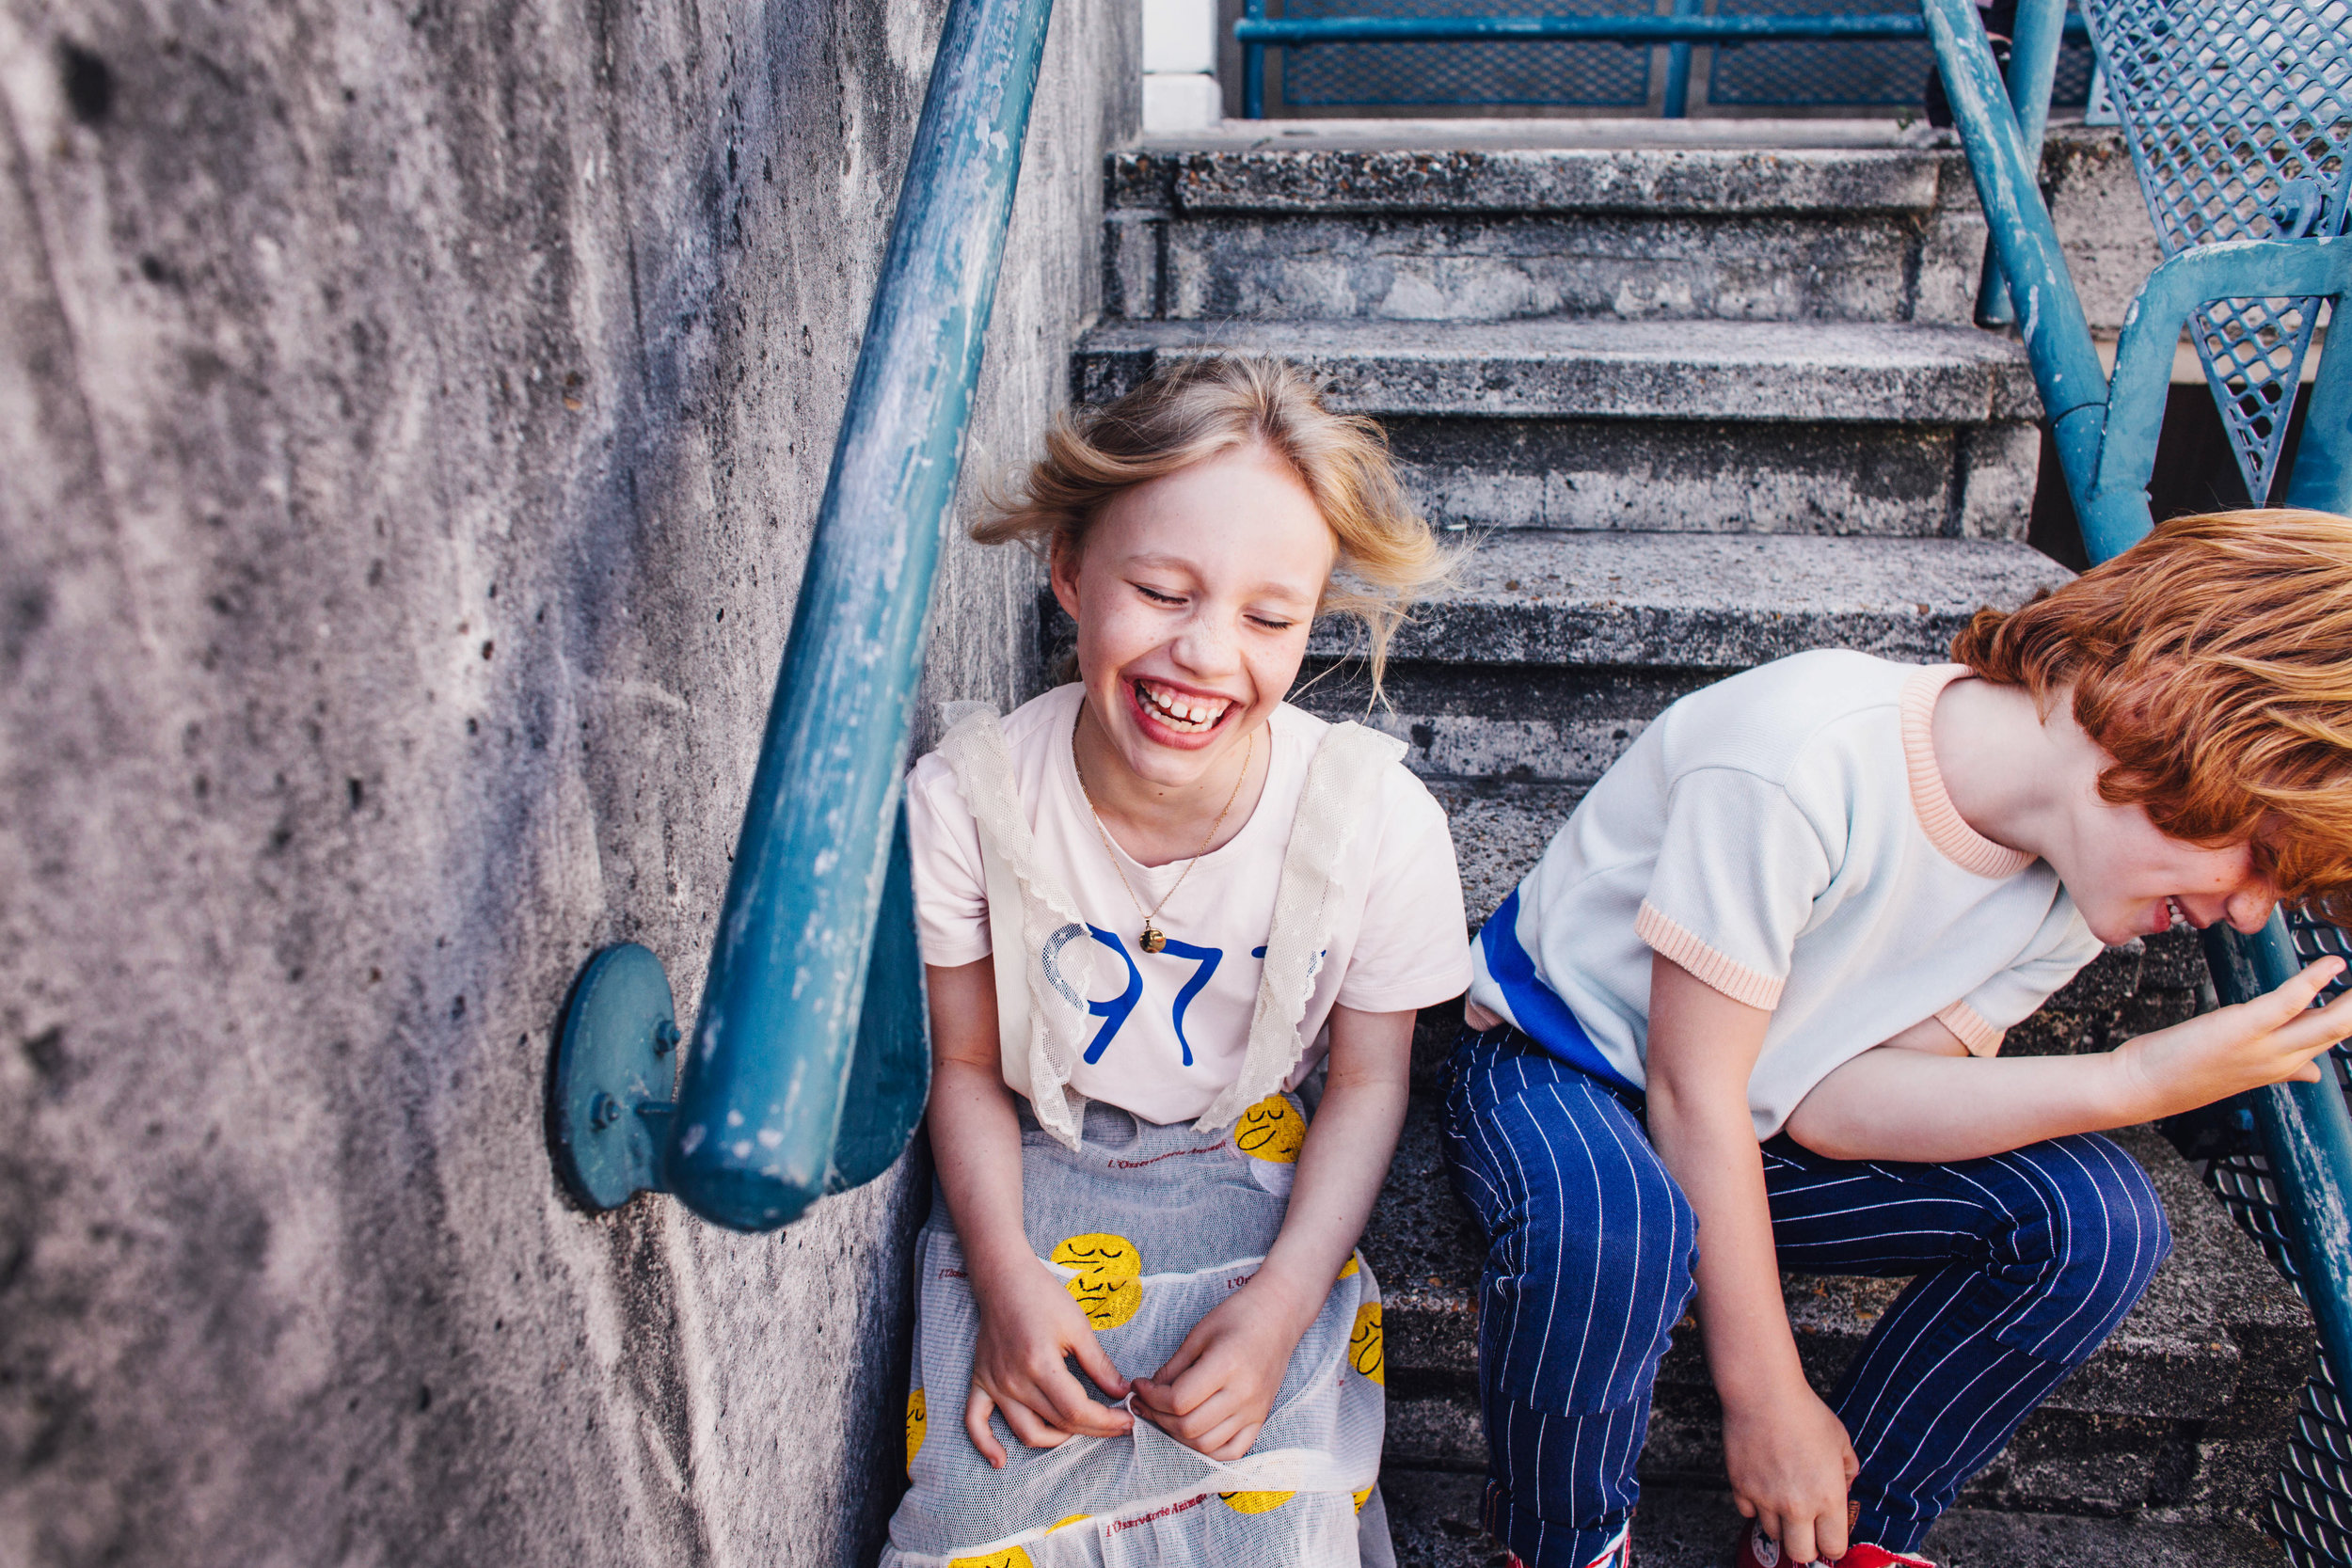 Concrete Schoolyard - Forever Young Magazine August 2017